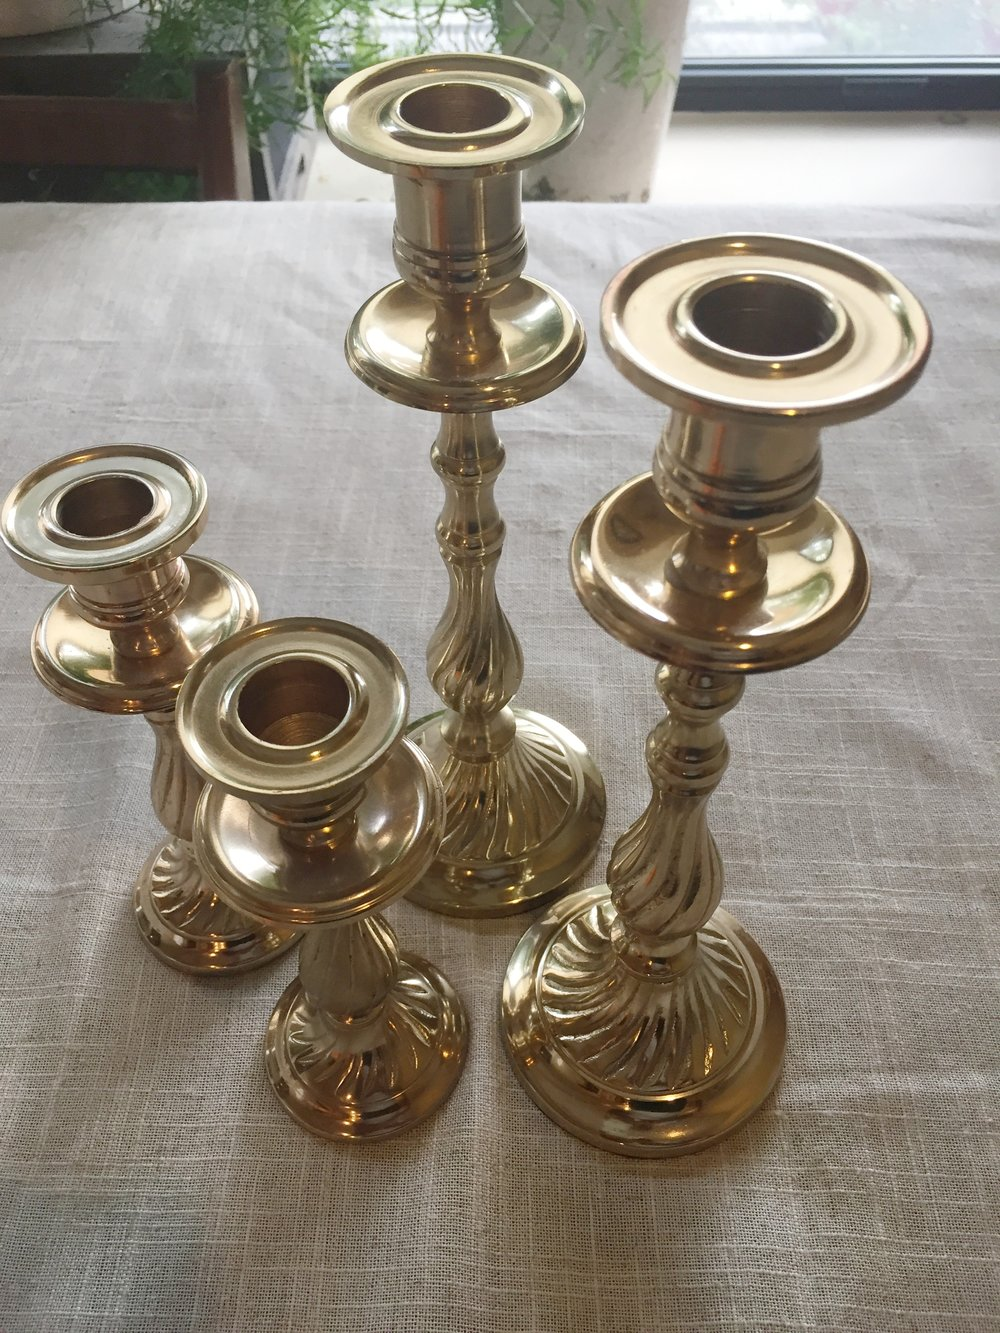 2 SETS OF CANDLE STICKS HOLDERS